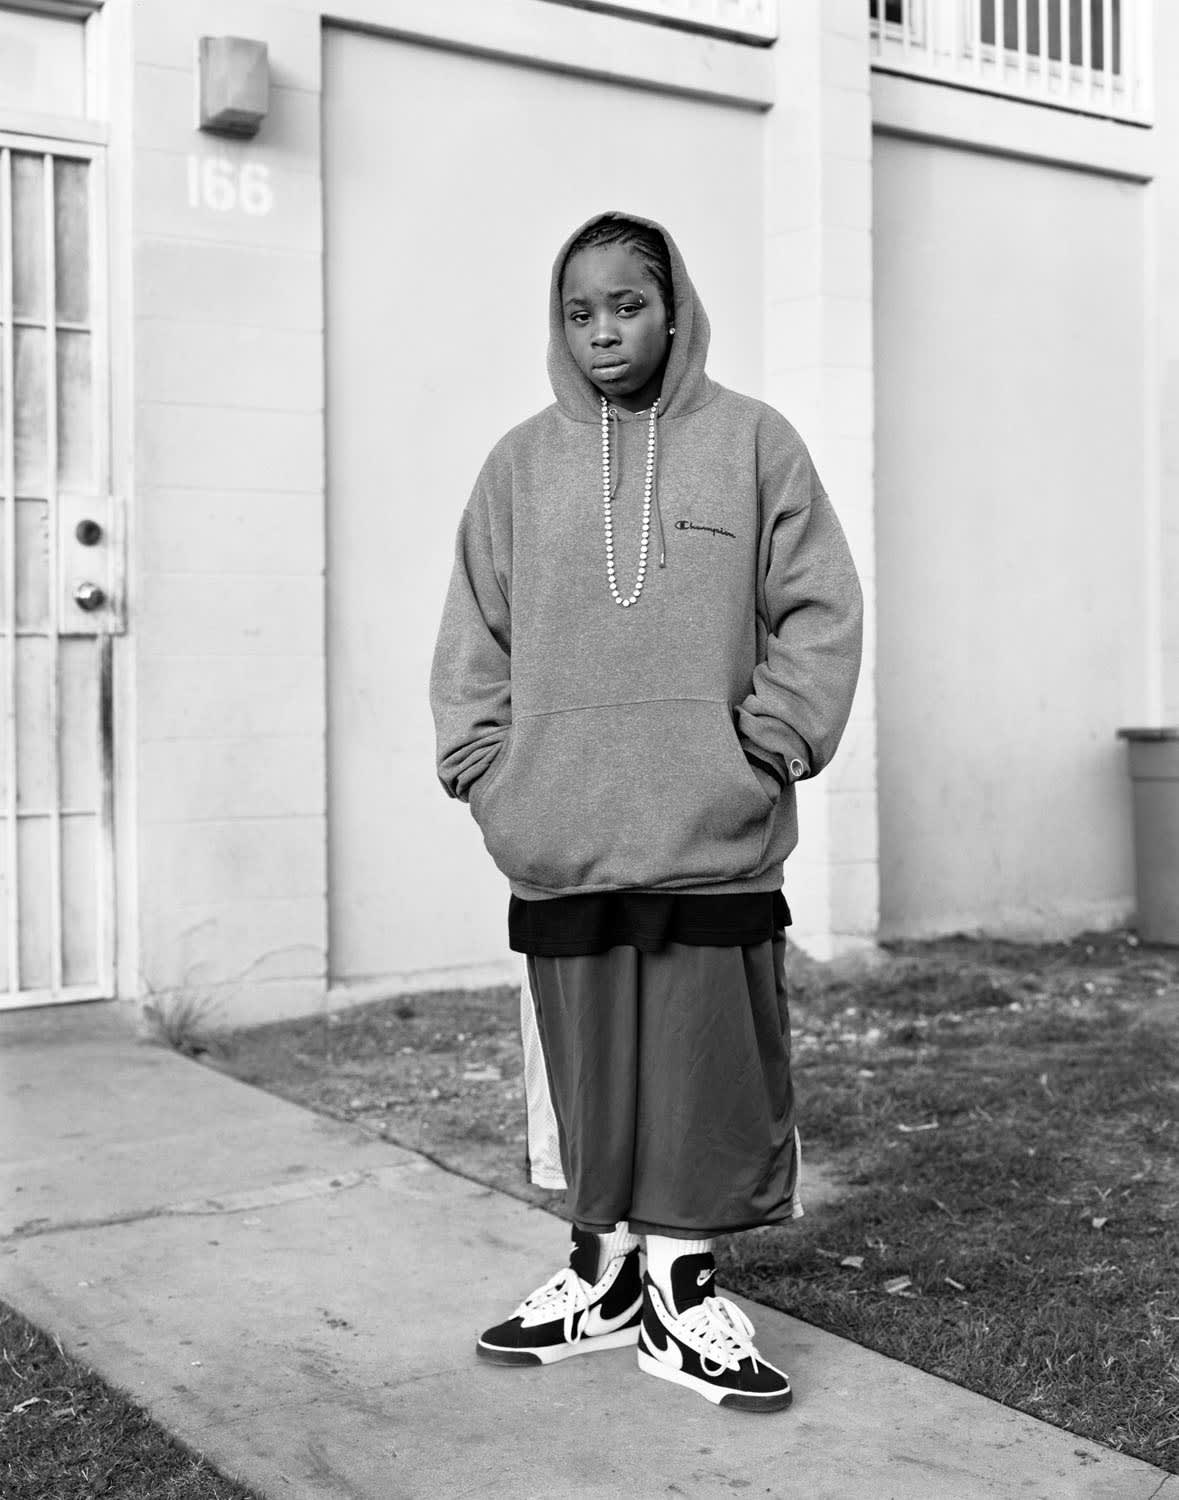 Marylee, 2010 From the series: Imperial Courts, 1993-2015